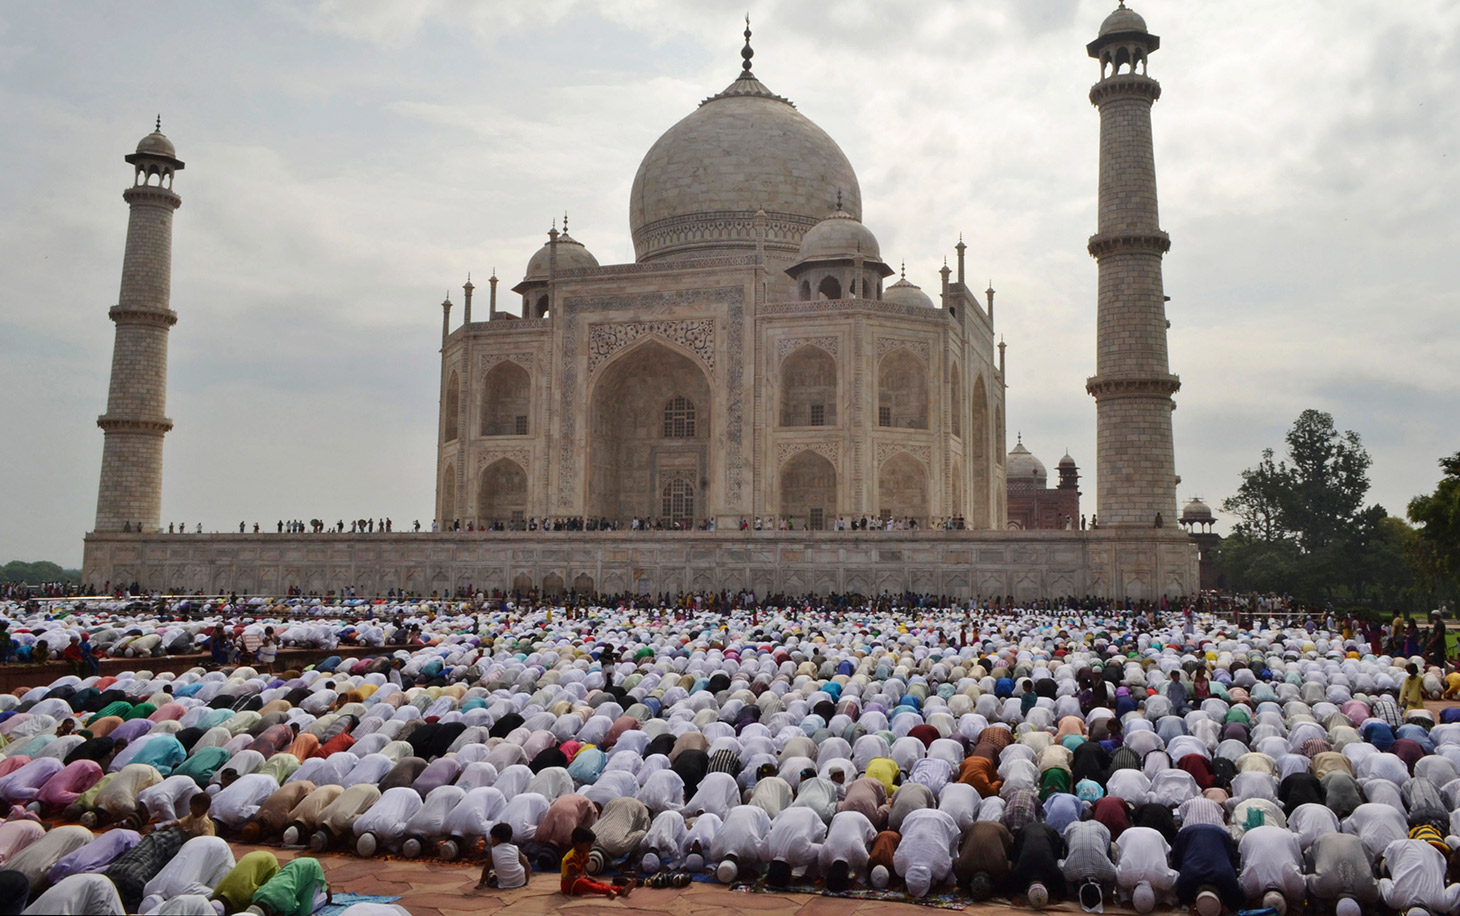 Indian Muslims offer prayers at a mosque in the premises of the Taj Mahal in Agra, India, Tuesday, July 29, 2014. Millions of Muslims across the world are celebrating the Eid al-Fitr holiday, which marks the end of the month-long fast of Ramadan. (AP Photo/Pawan Sharma)